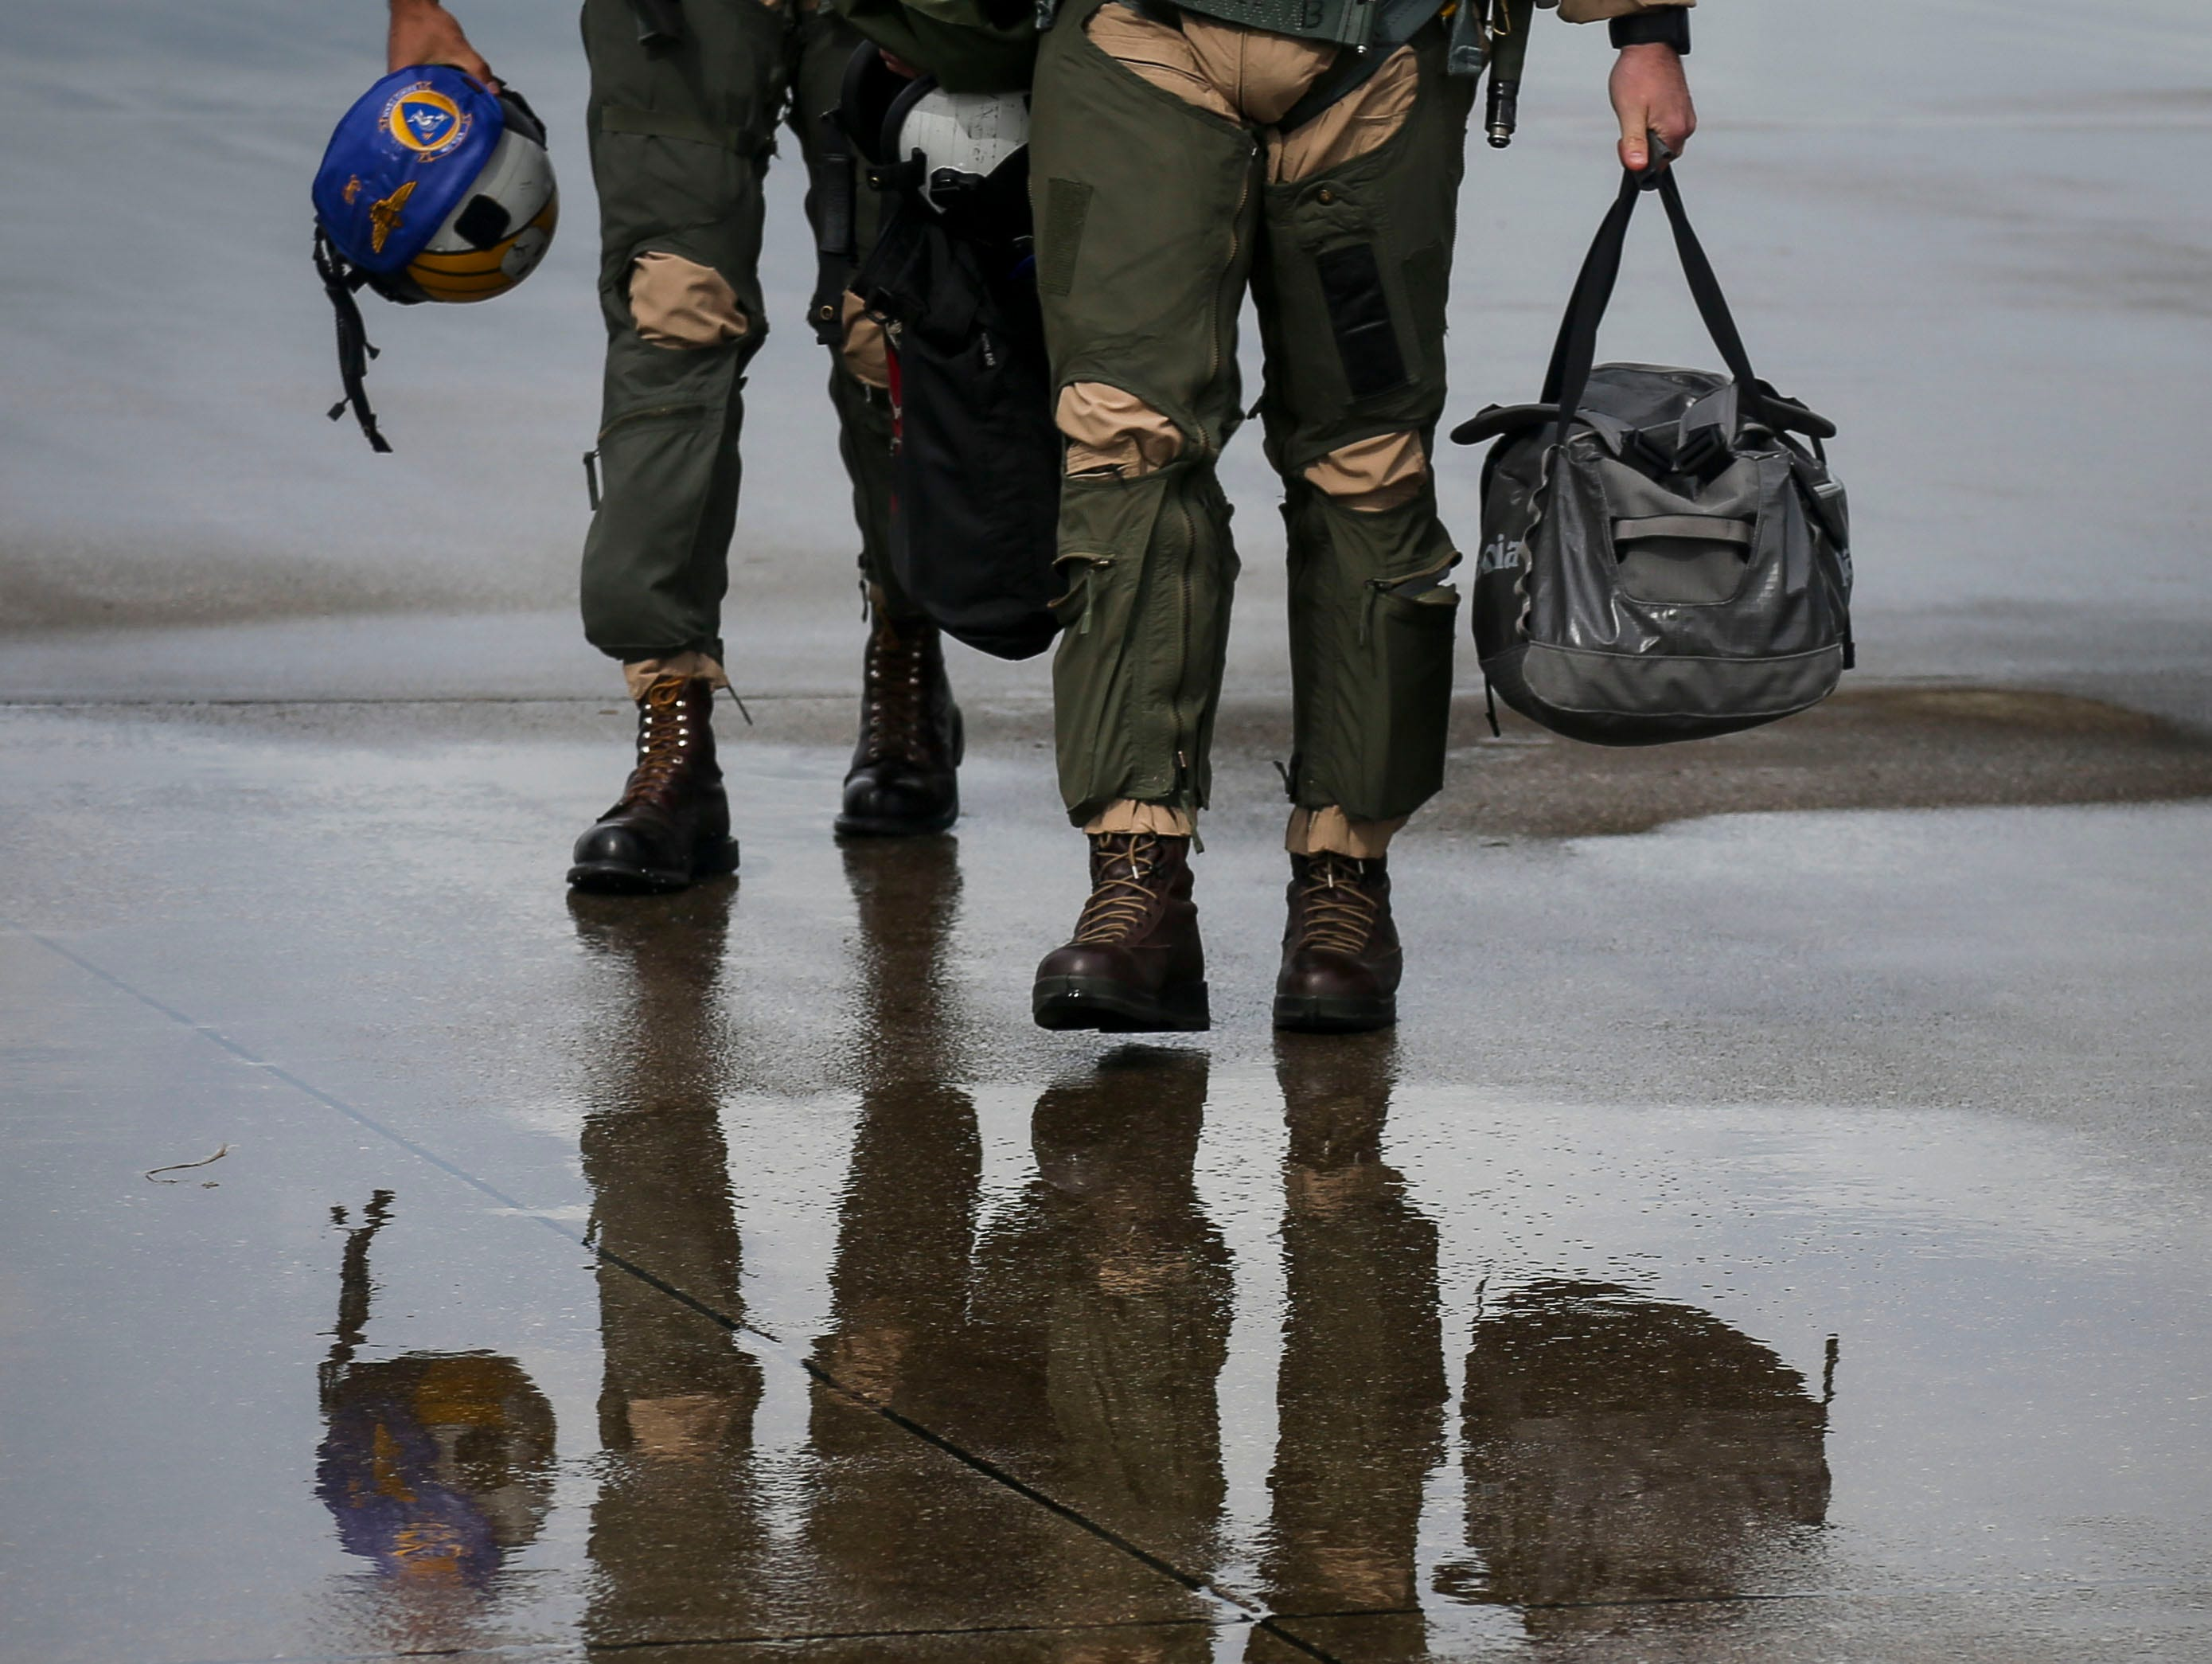 Lt. Chris Garner, left, and Lt. Jeff Mayer, right, walk off the runway after they navigated their F/A-18 Hornet, a twin-engine, supersonic combat jet, on the runway of the Kentucky Air National Guard ahead of practice for Thunder Over Louisville in Louisville, Ky. on Friday, April 12, 2019.